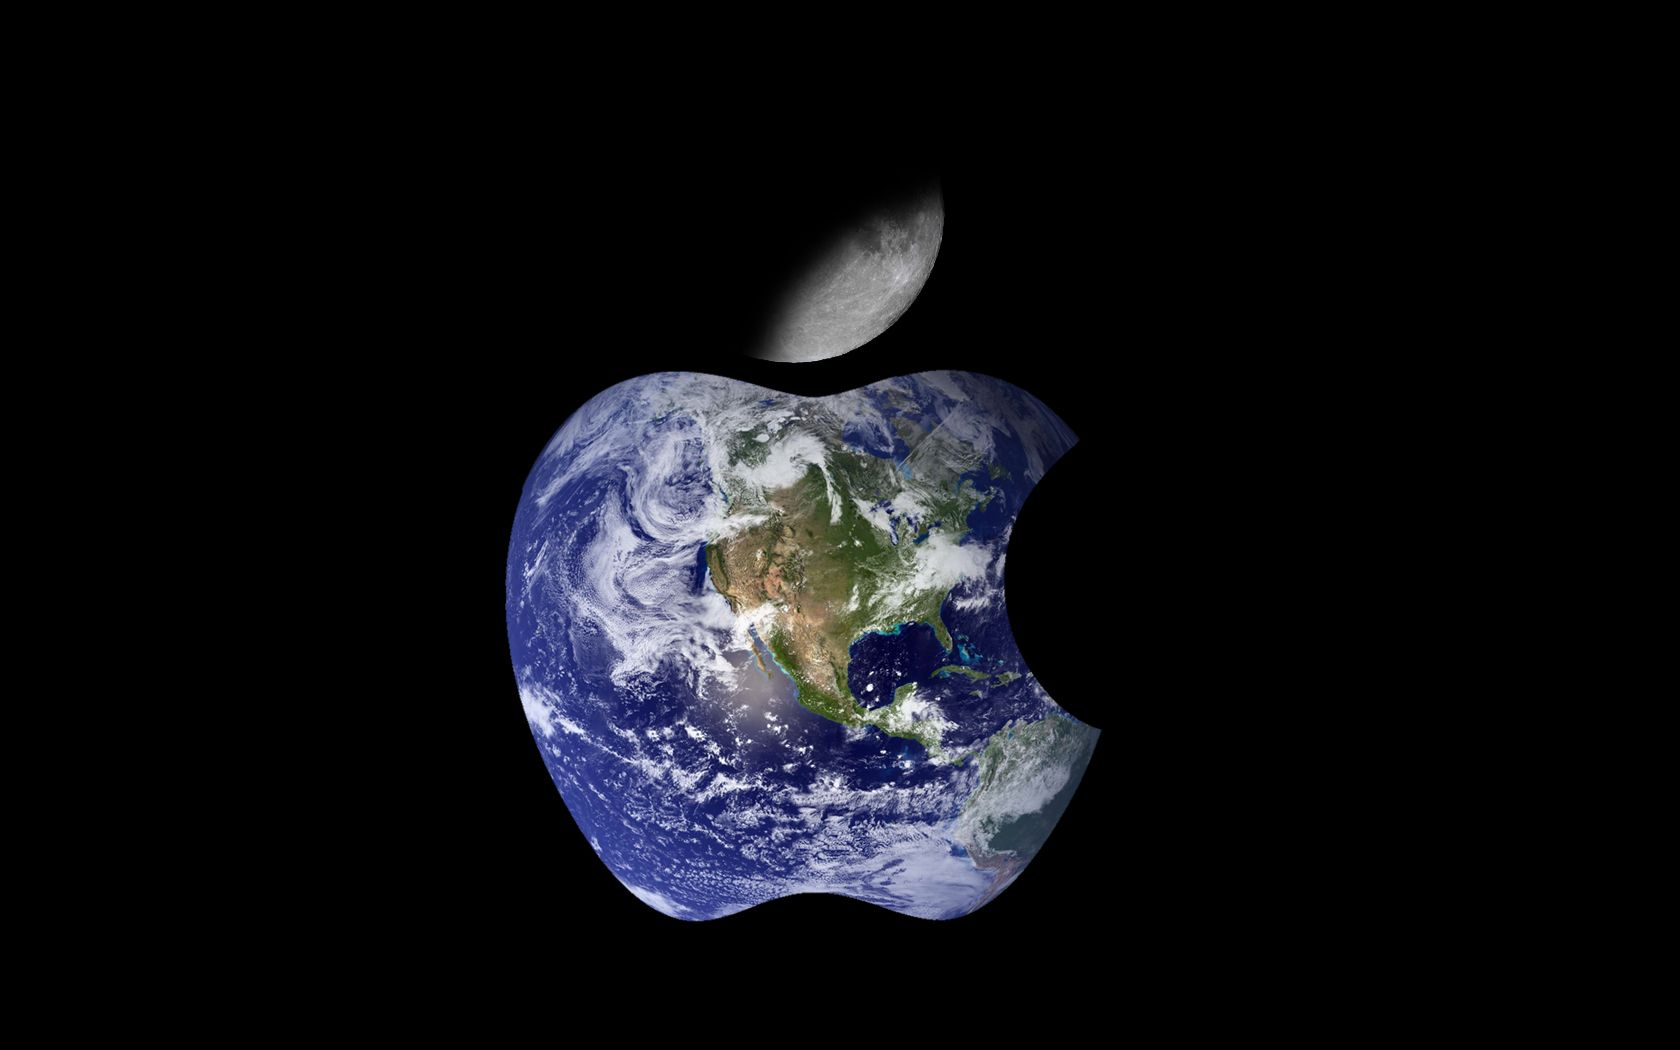 Apple Earth Wallpapers Top Free Apple Earth Backgrounds Wallpaperaccess